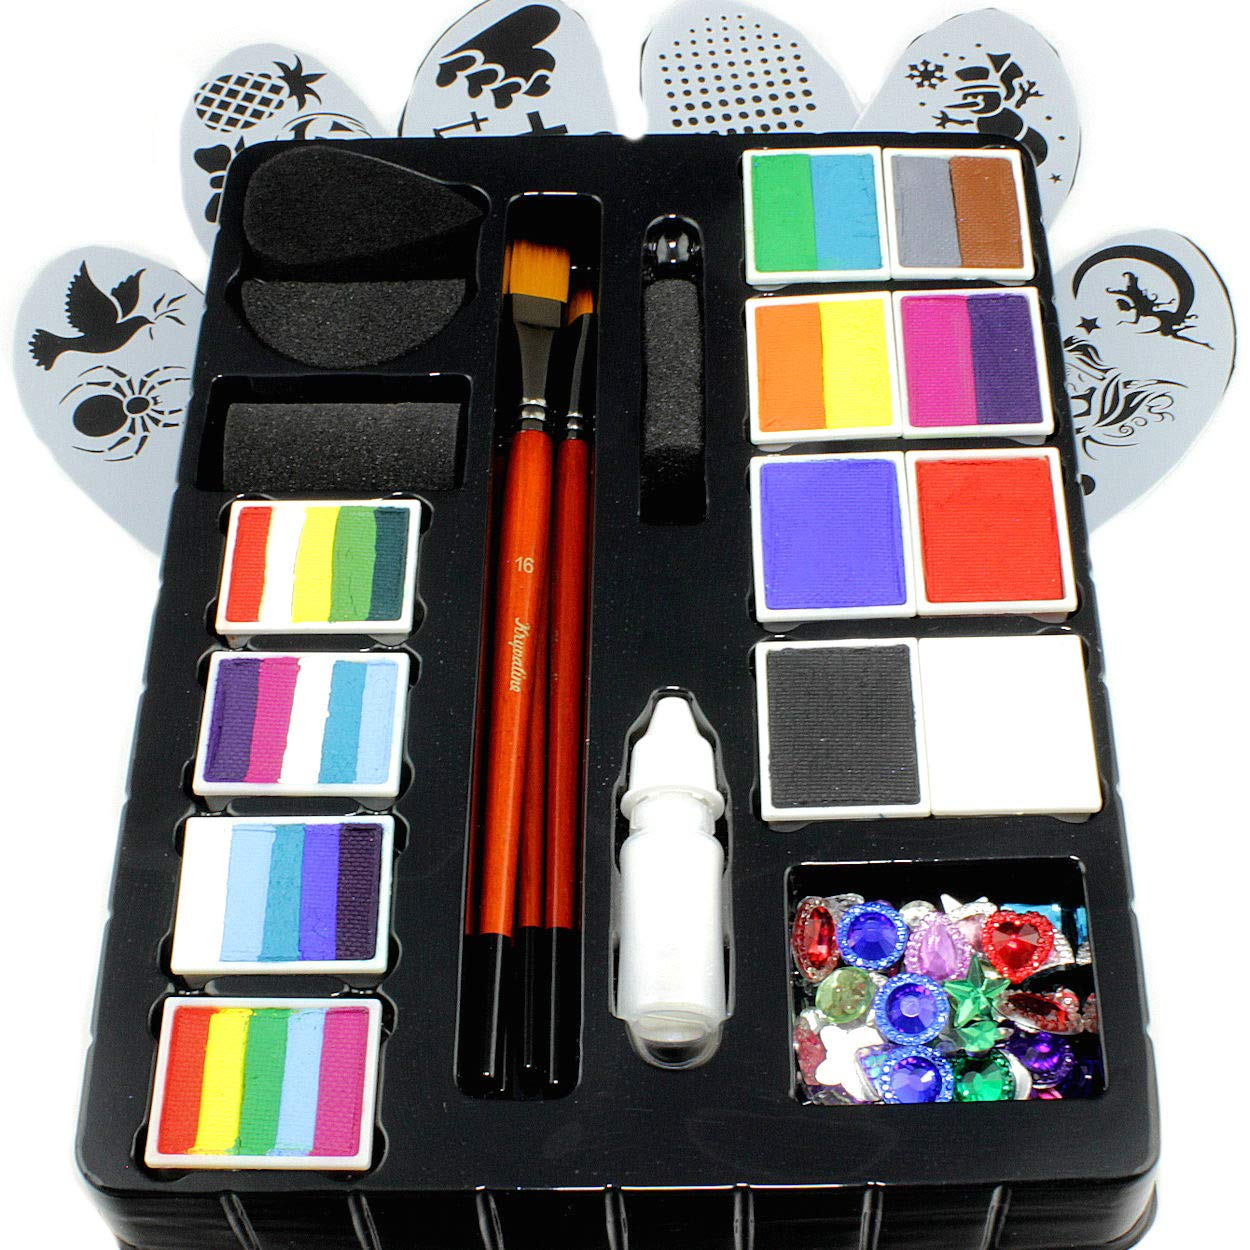 Face Paint Kit for Kids by Kryvaline Professionals with Stencils, Brushes and Biodegradable Glitters in Spill Proof Bottle Plus Skin Jewels by Kryvaline